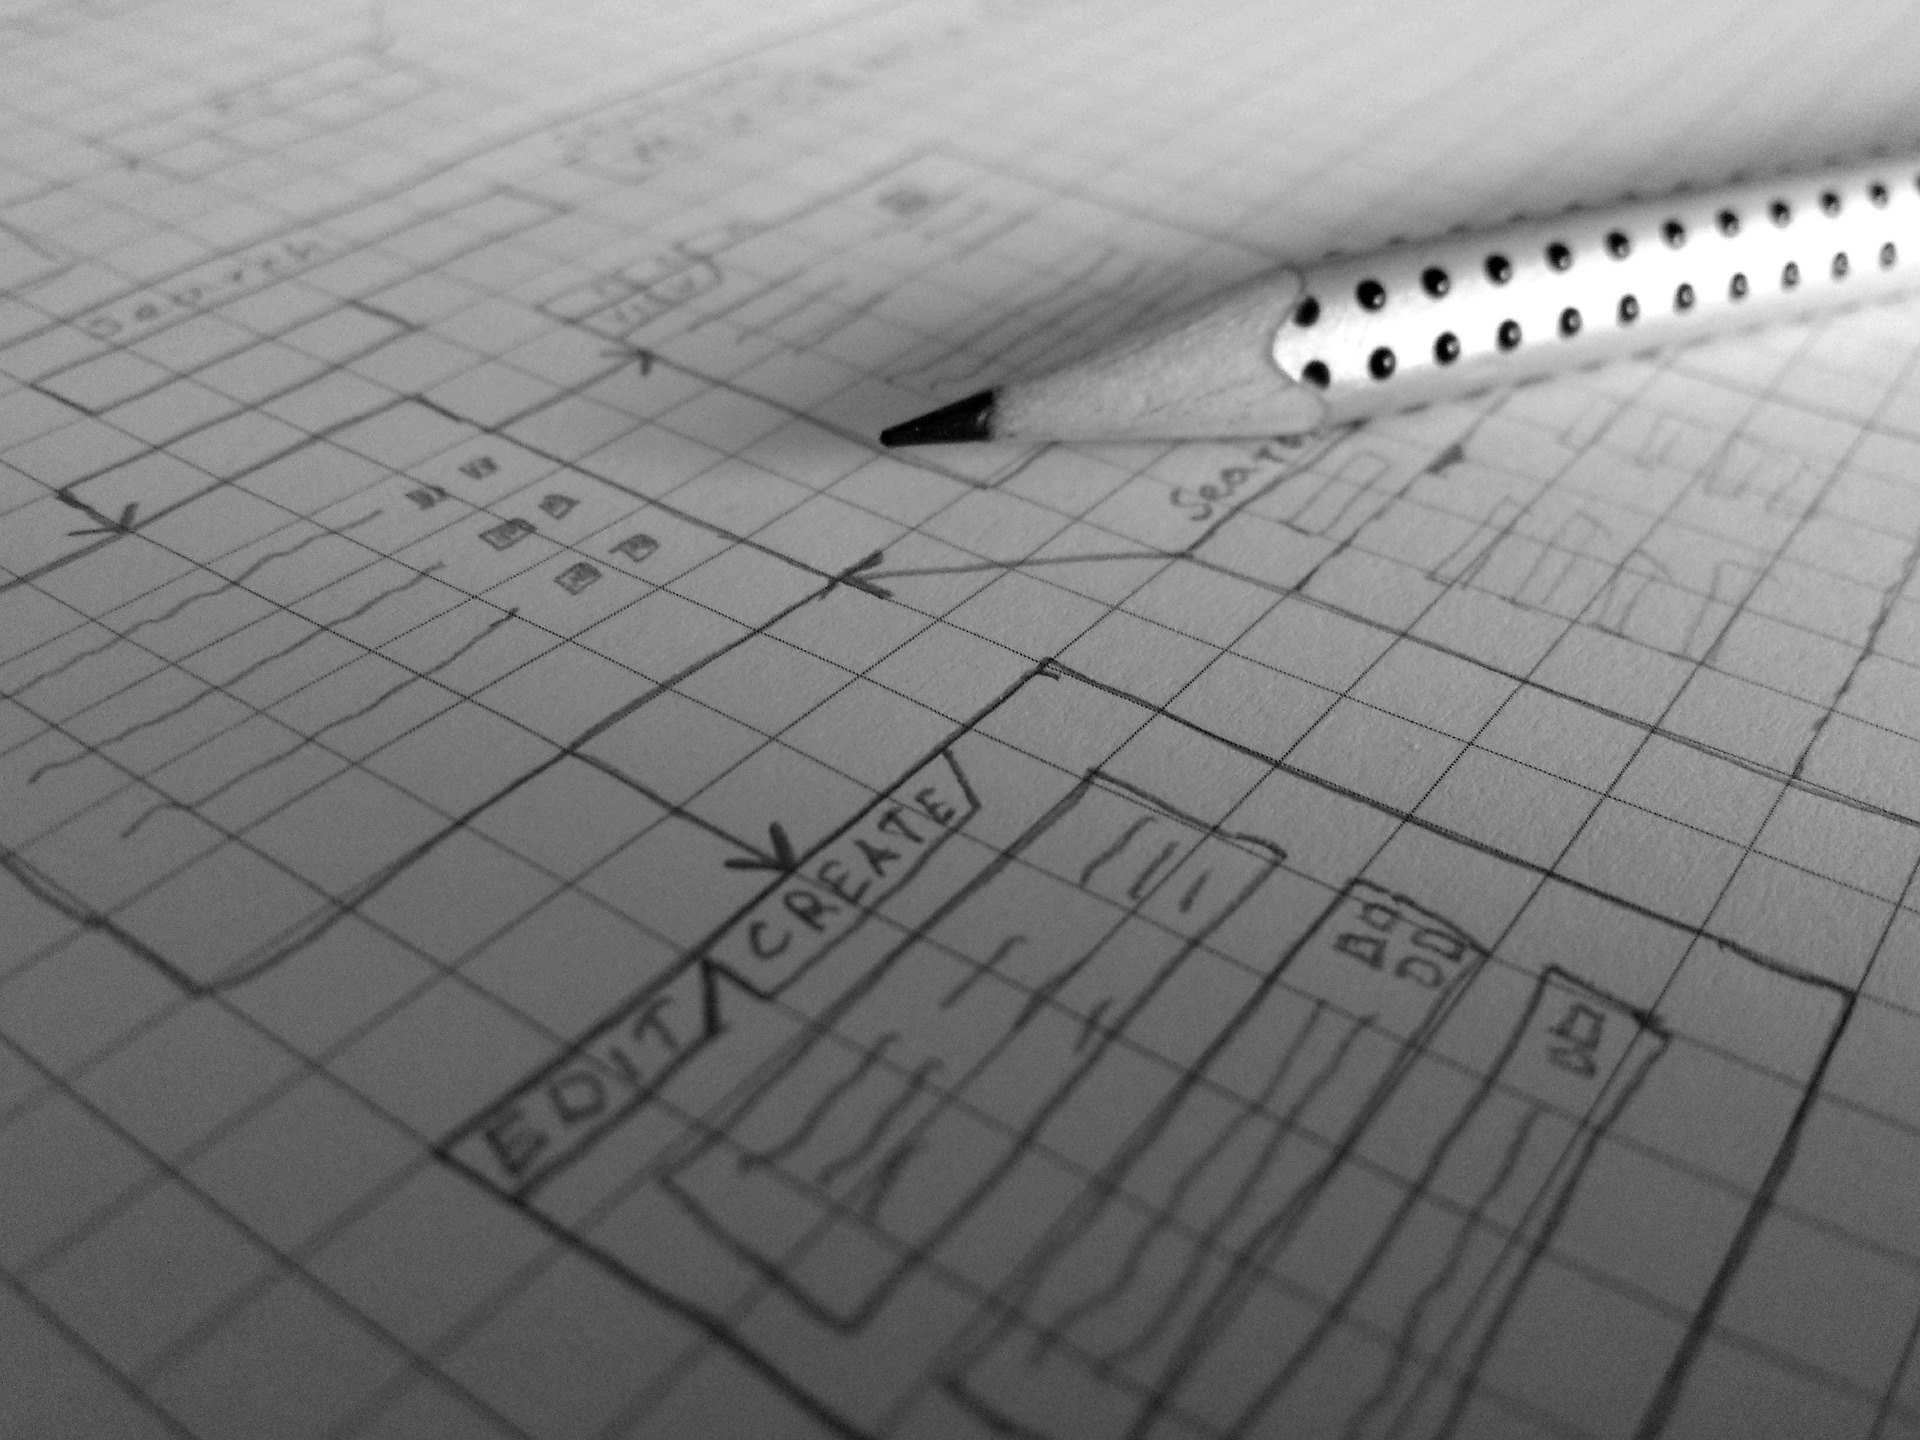 IT-Pro Support | IT Support Shropshire | Pencil and paper